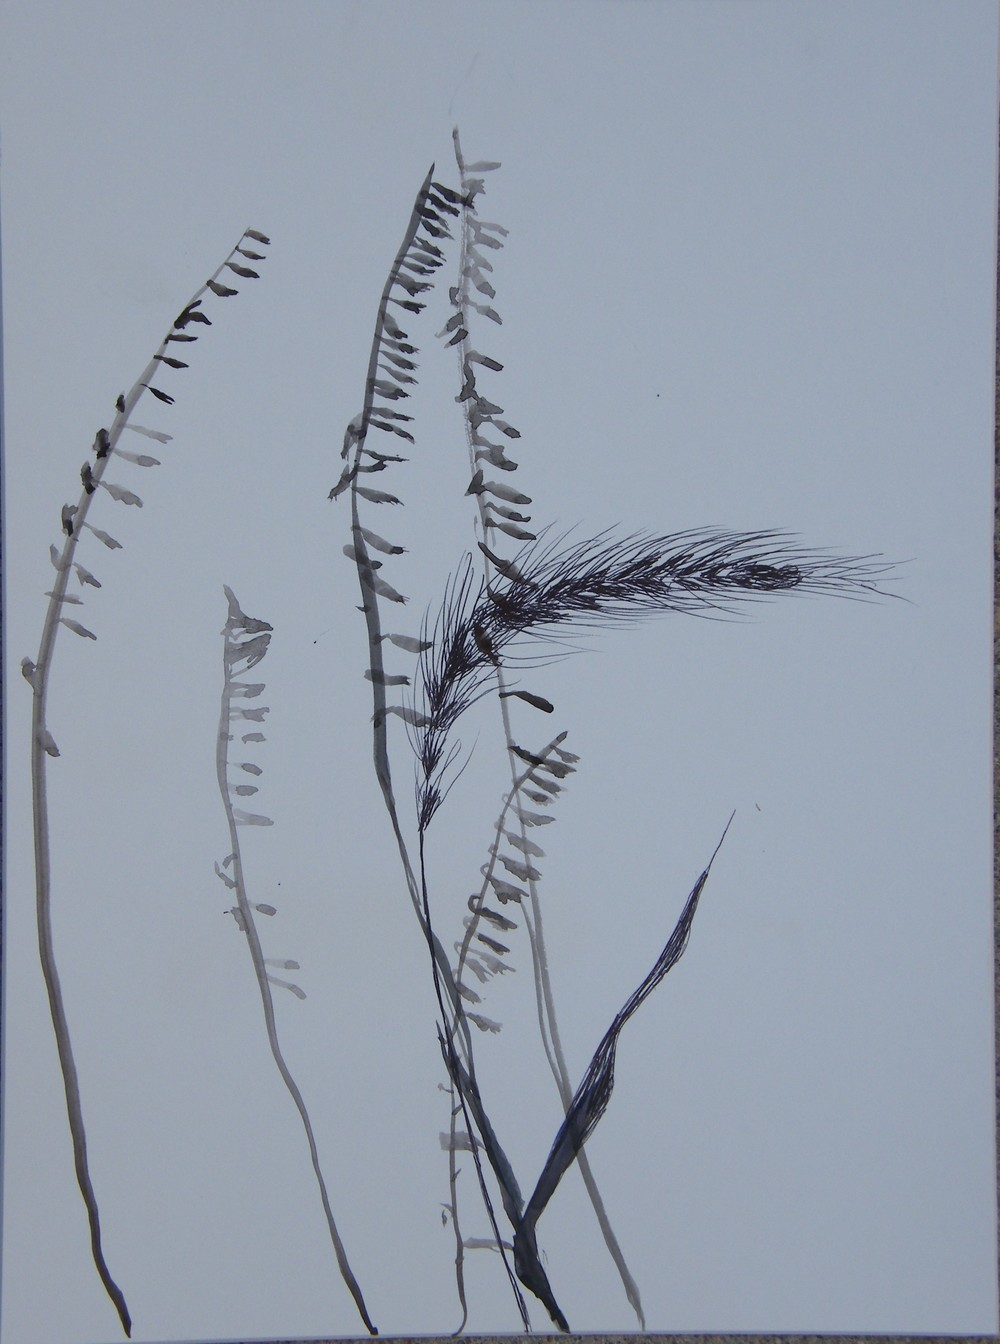 Silhouette painting/drawing, restored prairie